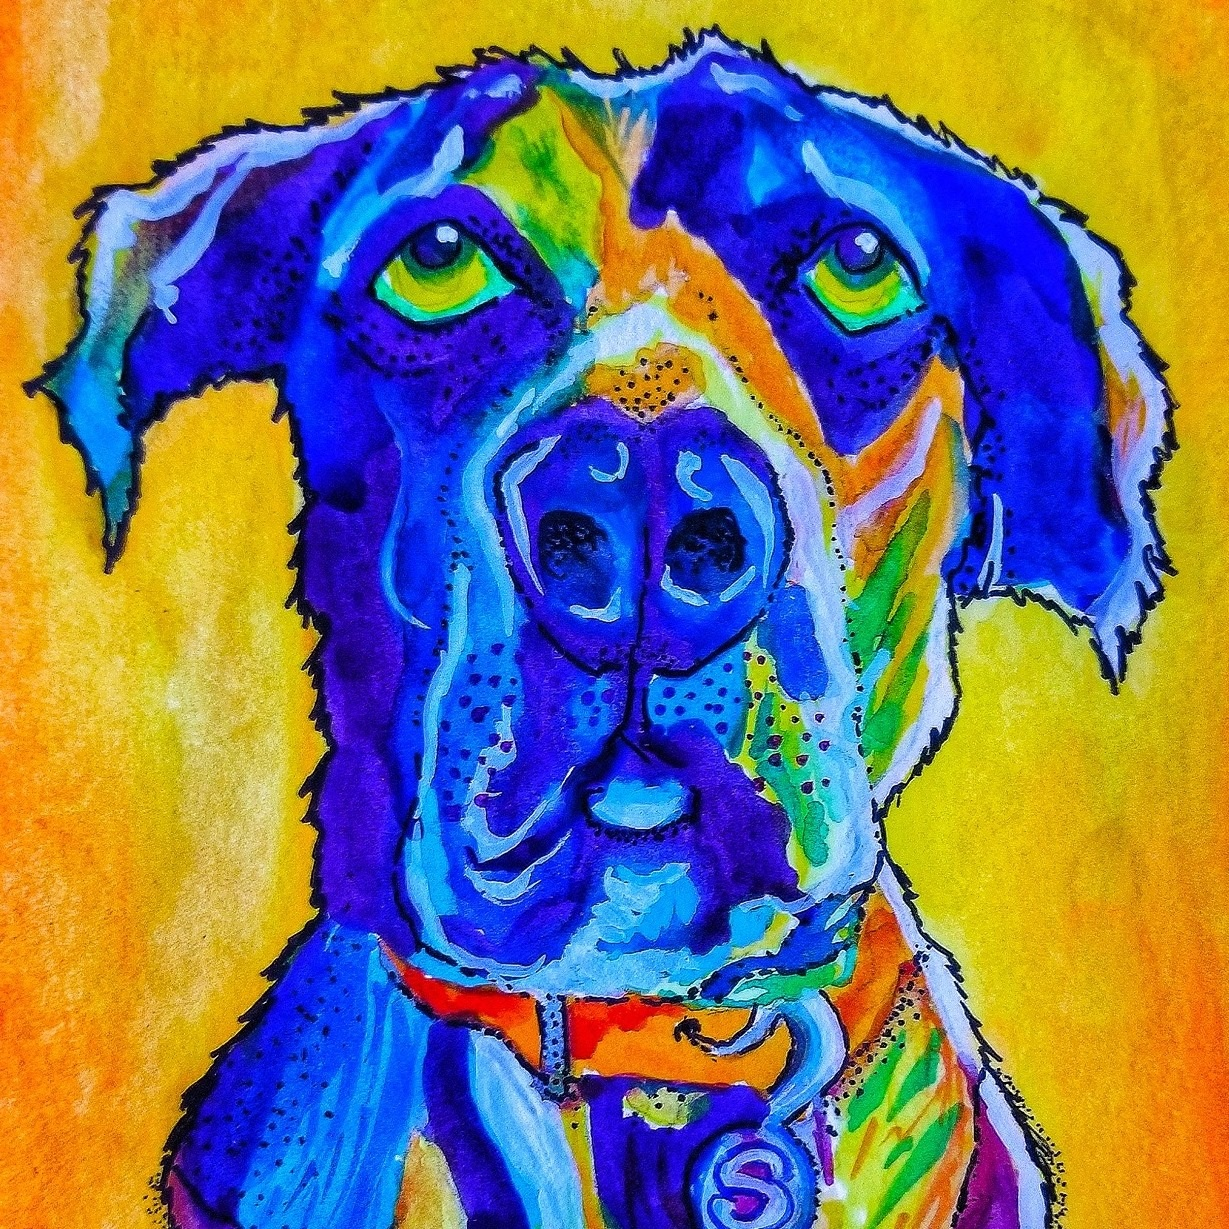 """Samson"" by Lenore Koppelman. Watercolor on watercolor paper."